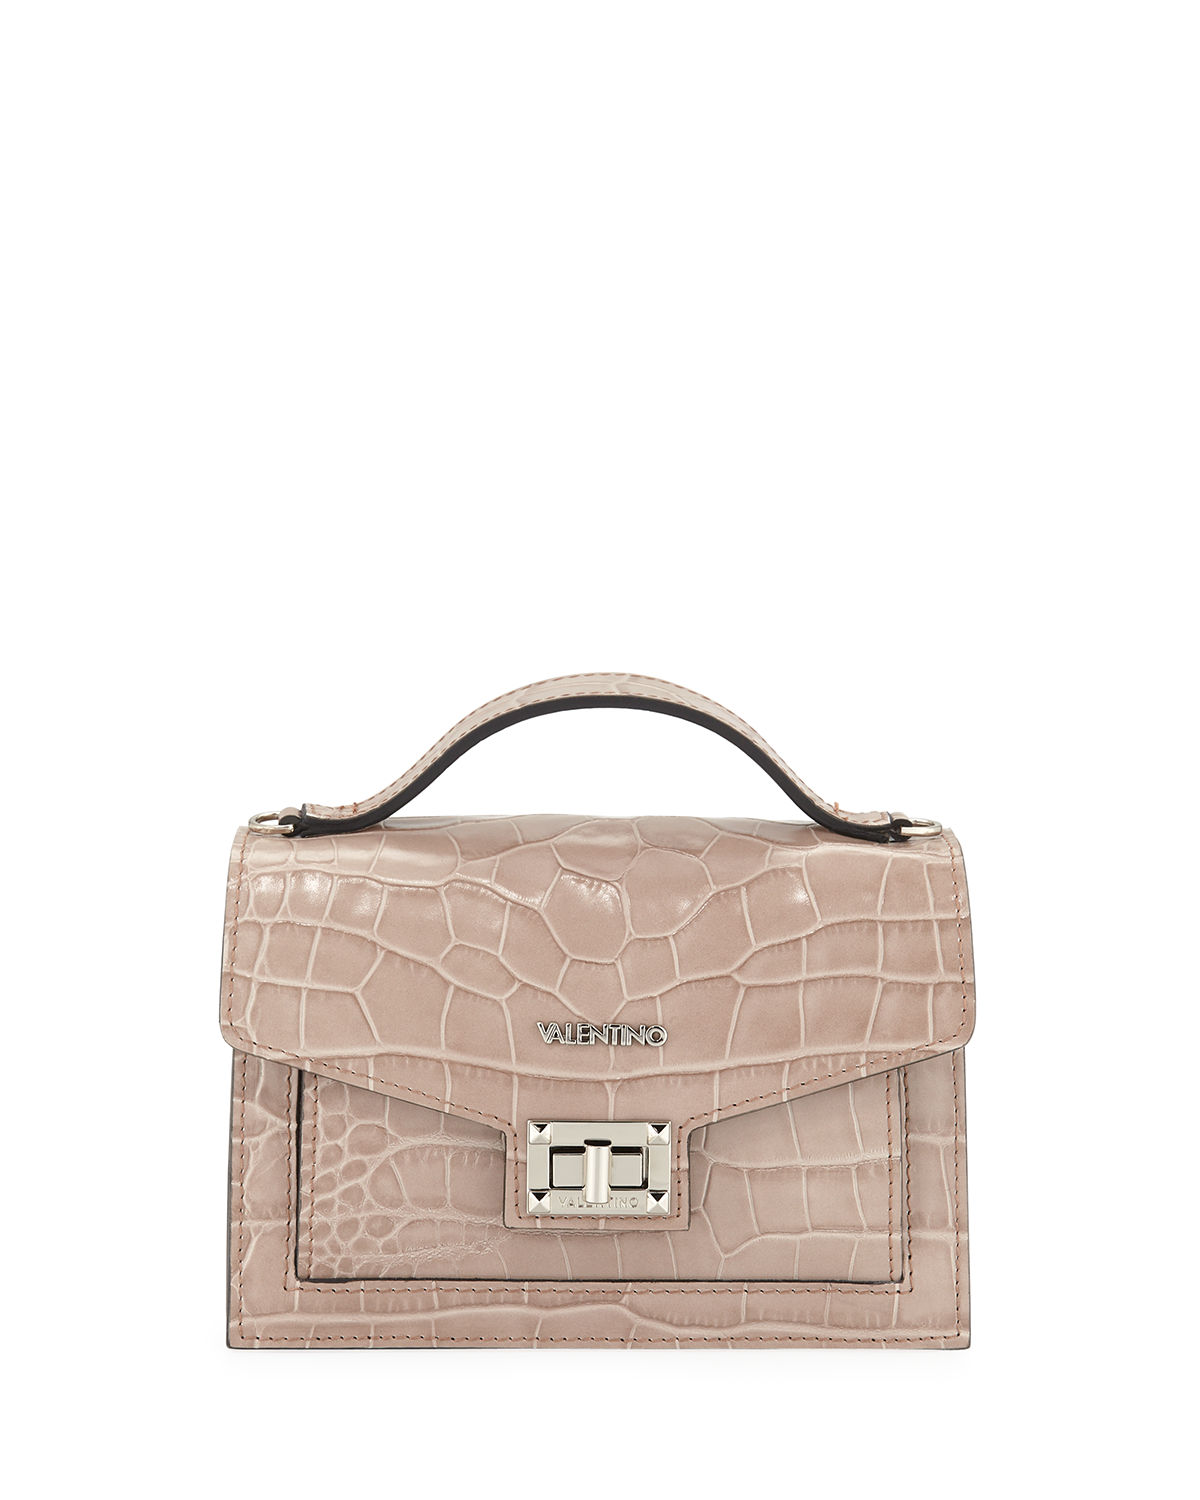 Titti Croc-Embossed Leather Top-Handle Bag